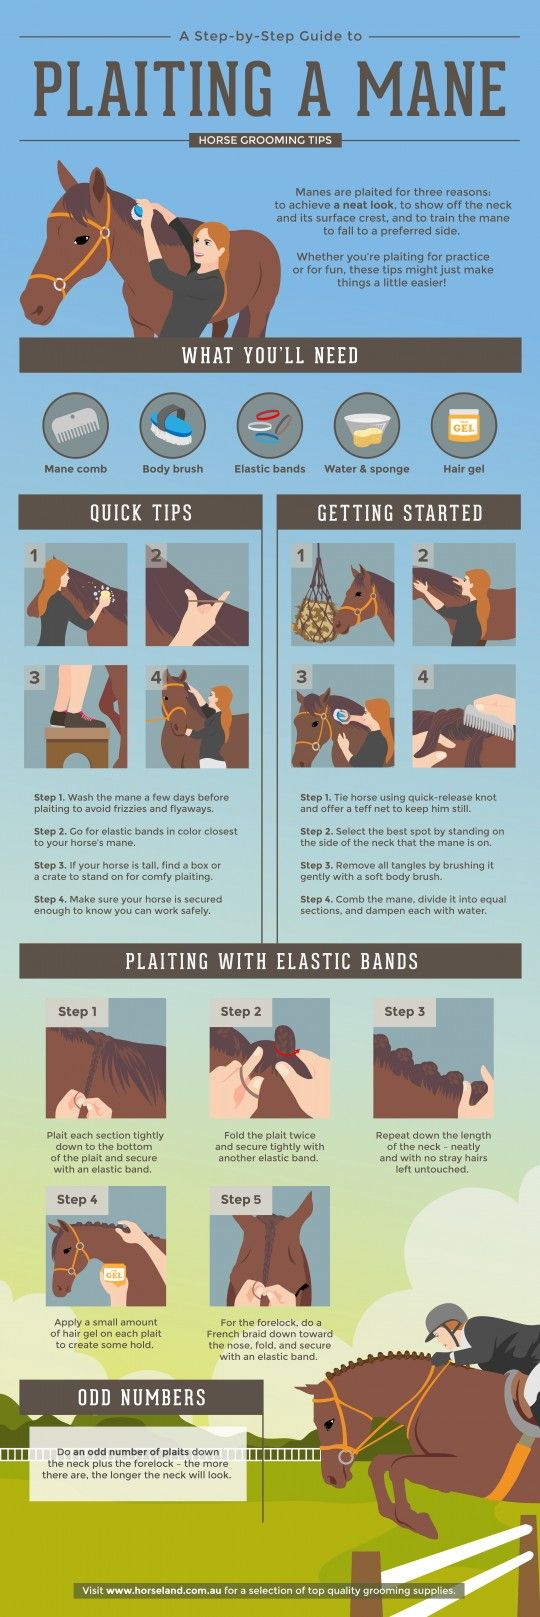 A Step-by-Step Guide to Plaiting a Mane